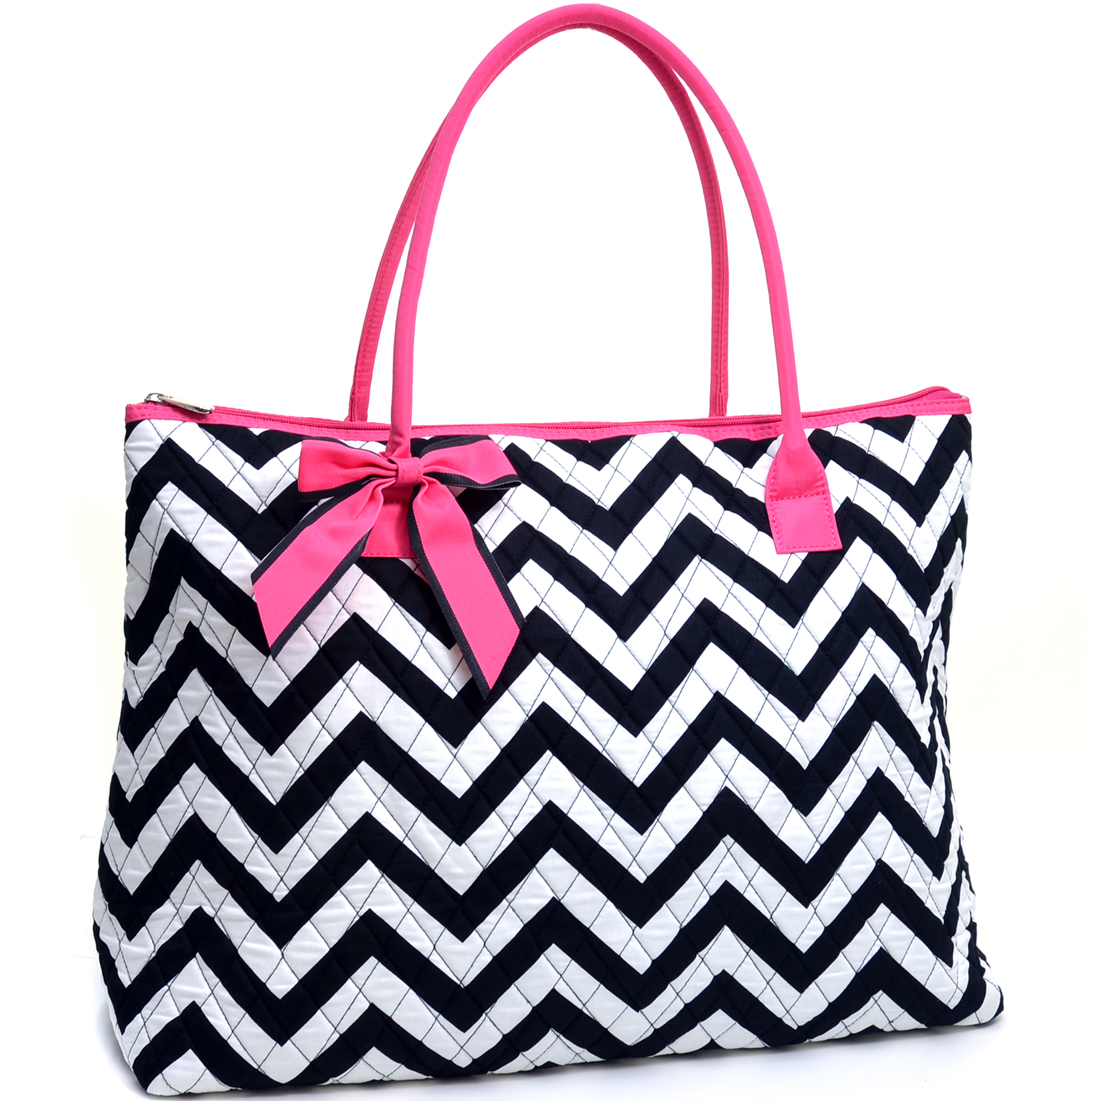 Rosen Blue™ Oversized Quilted Tote Bag with Optional Bow Decor in Chevron Print